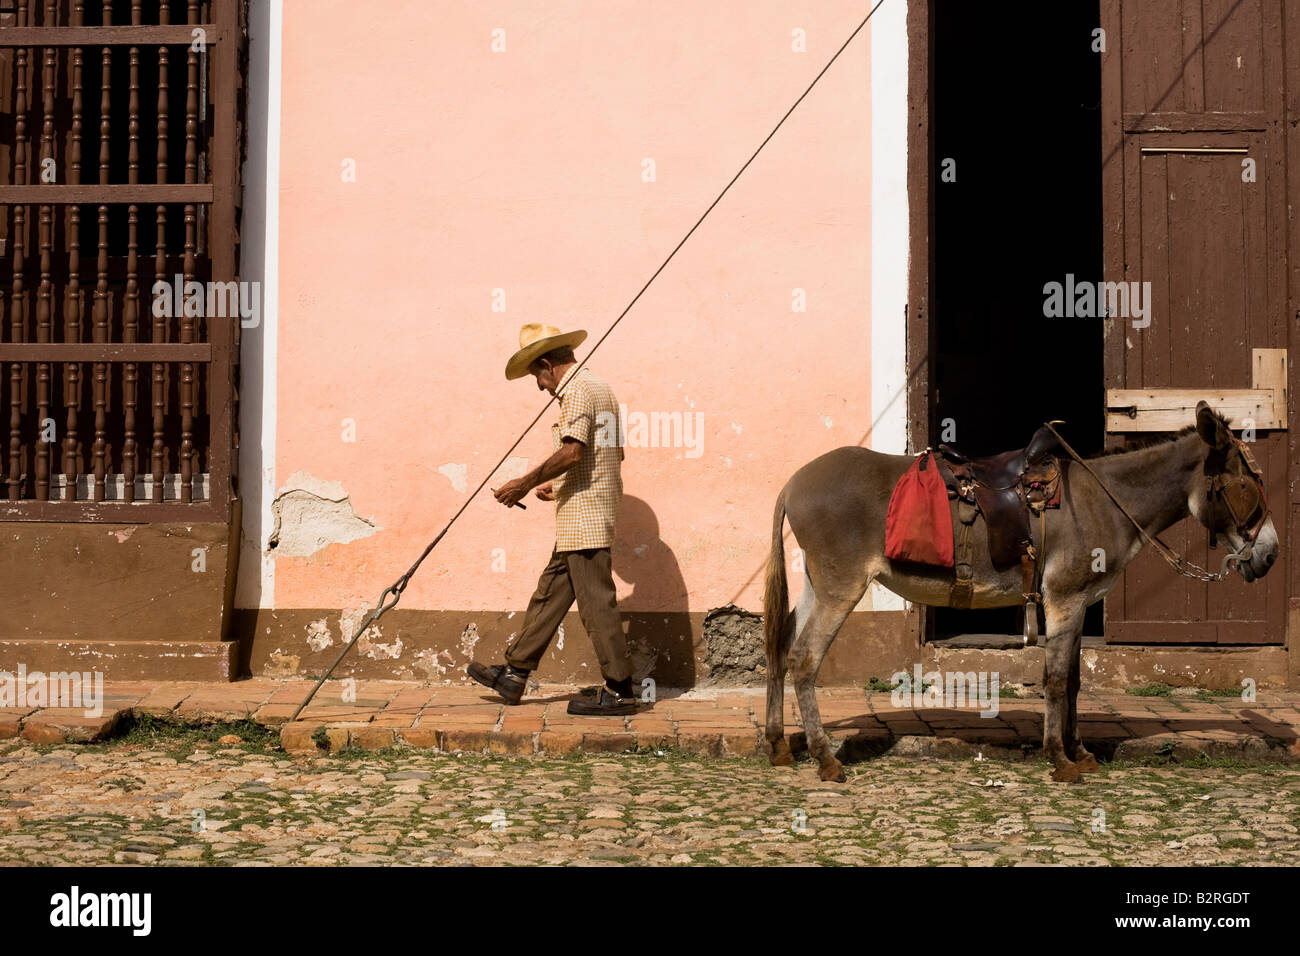 Elderly man and his donkey on the street of Trinidad, Cuba - Stock Image